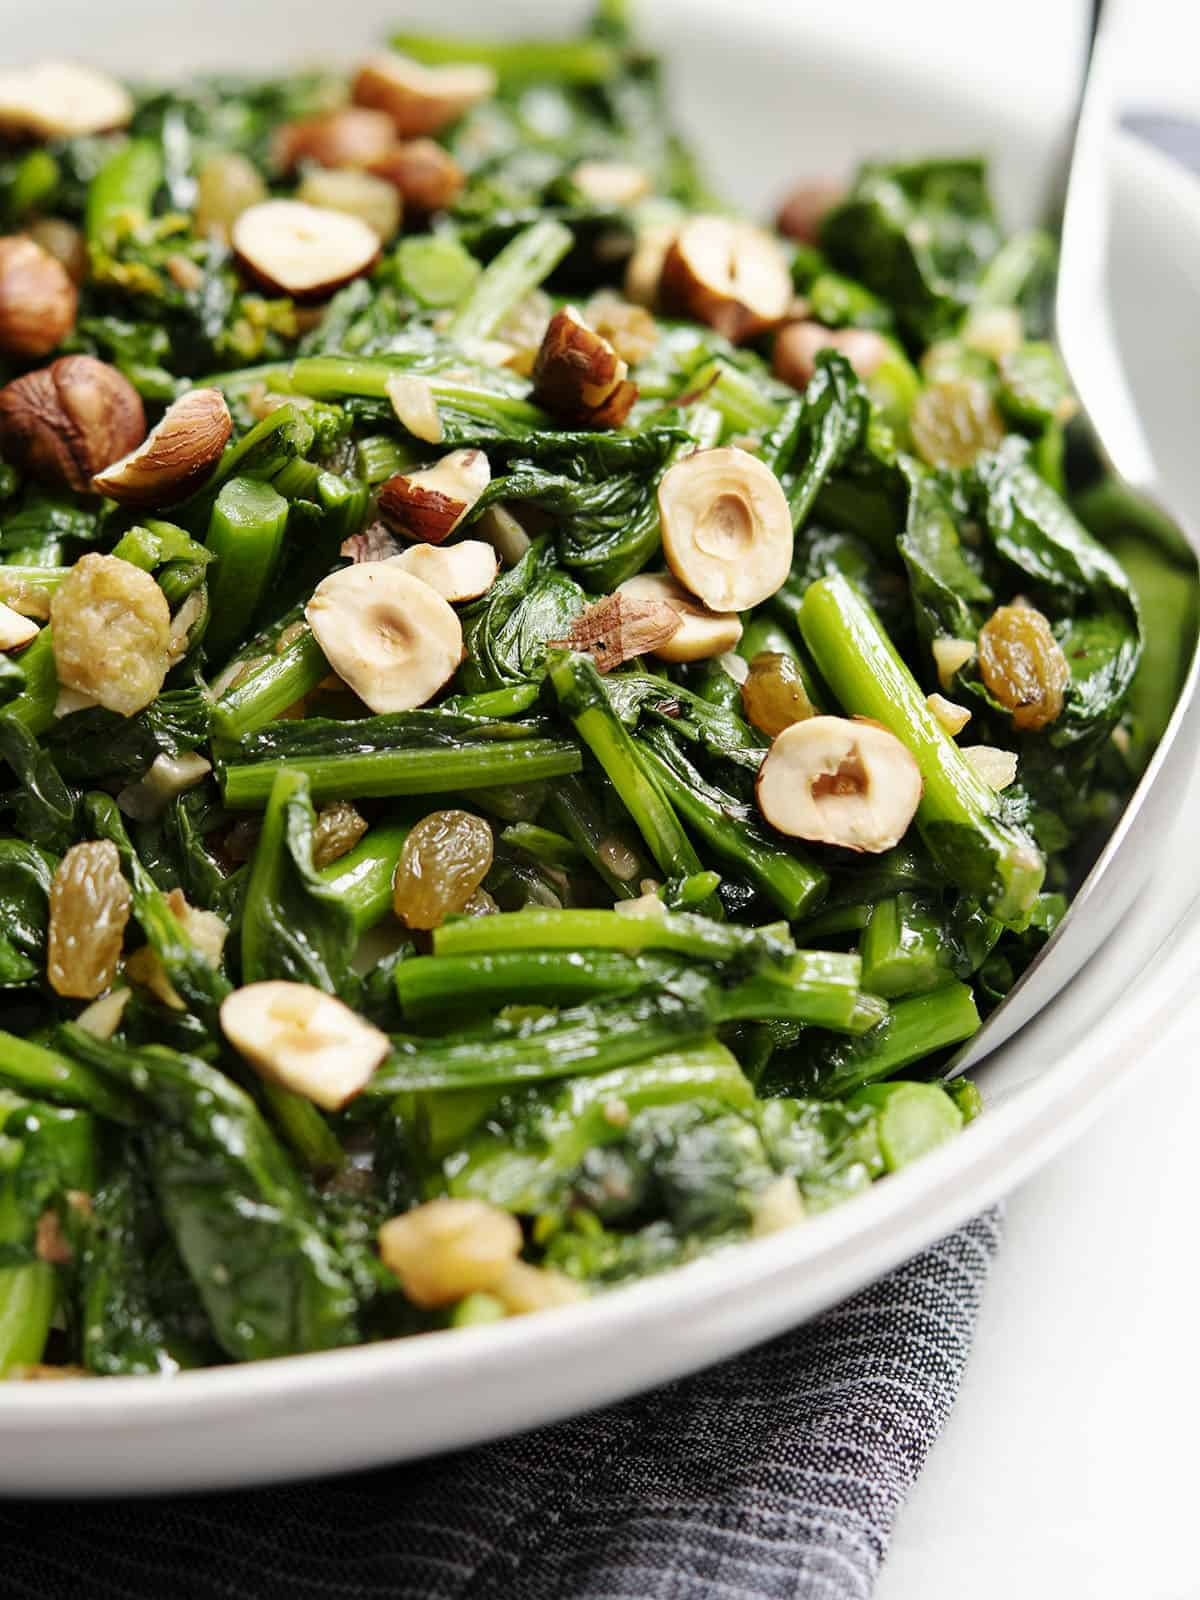 Rapini (Broccoli Rabe) with Raisins and Hazelnuts served in a white bowl